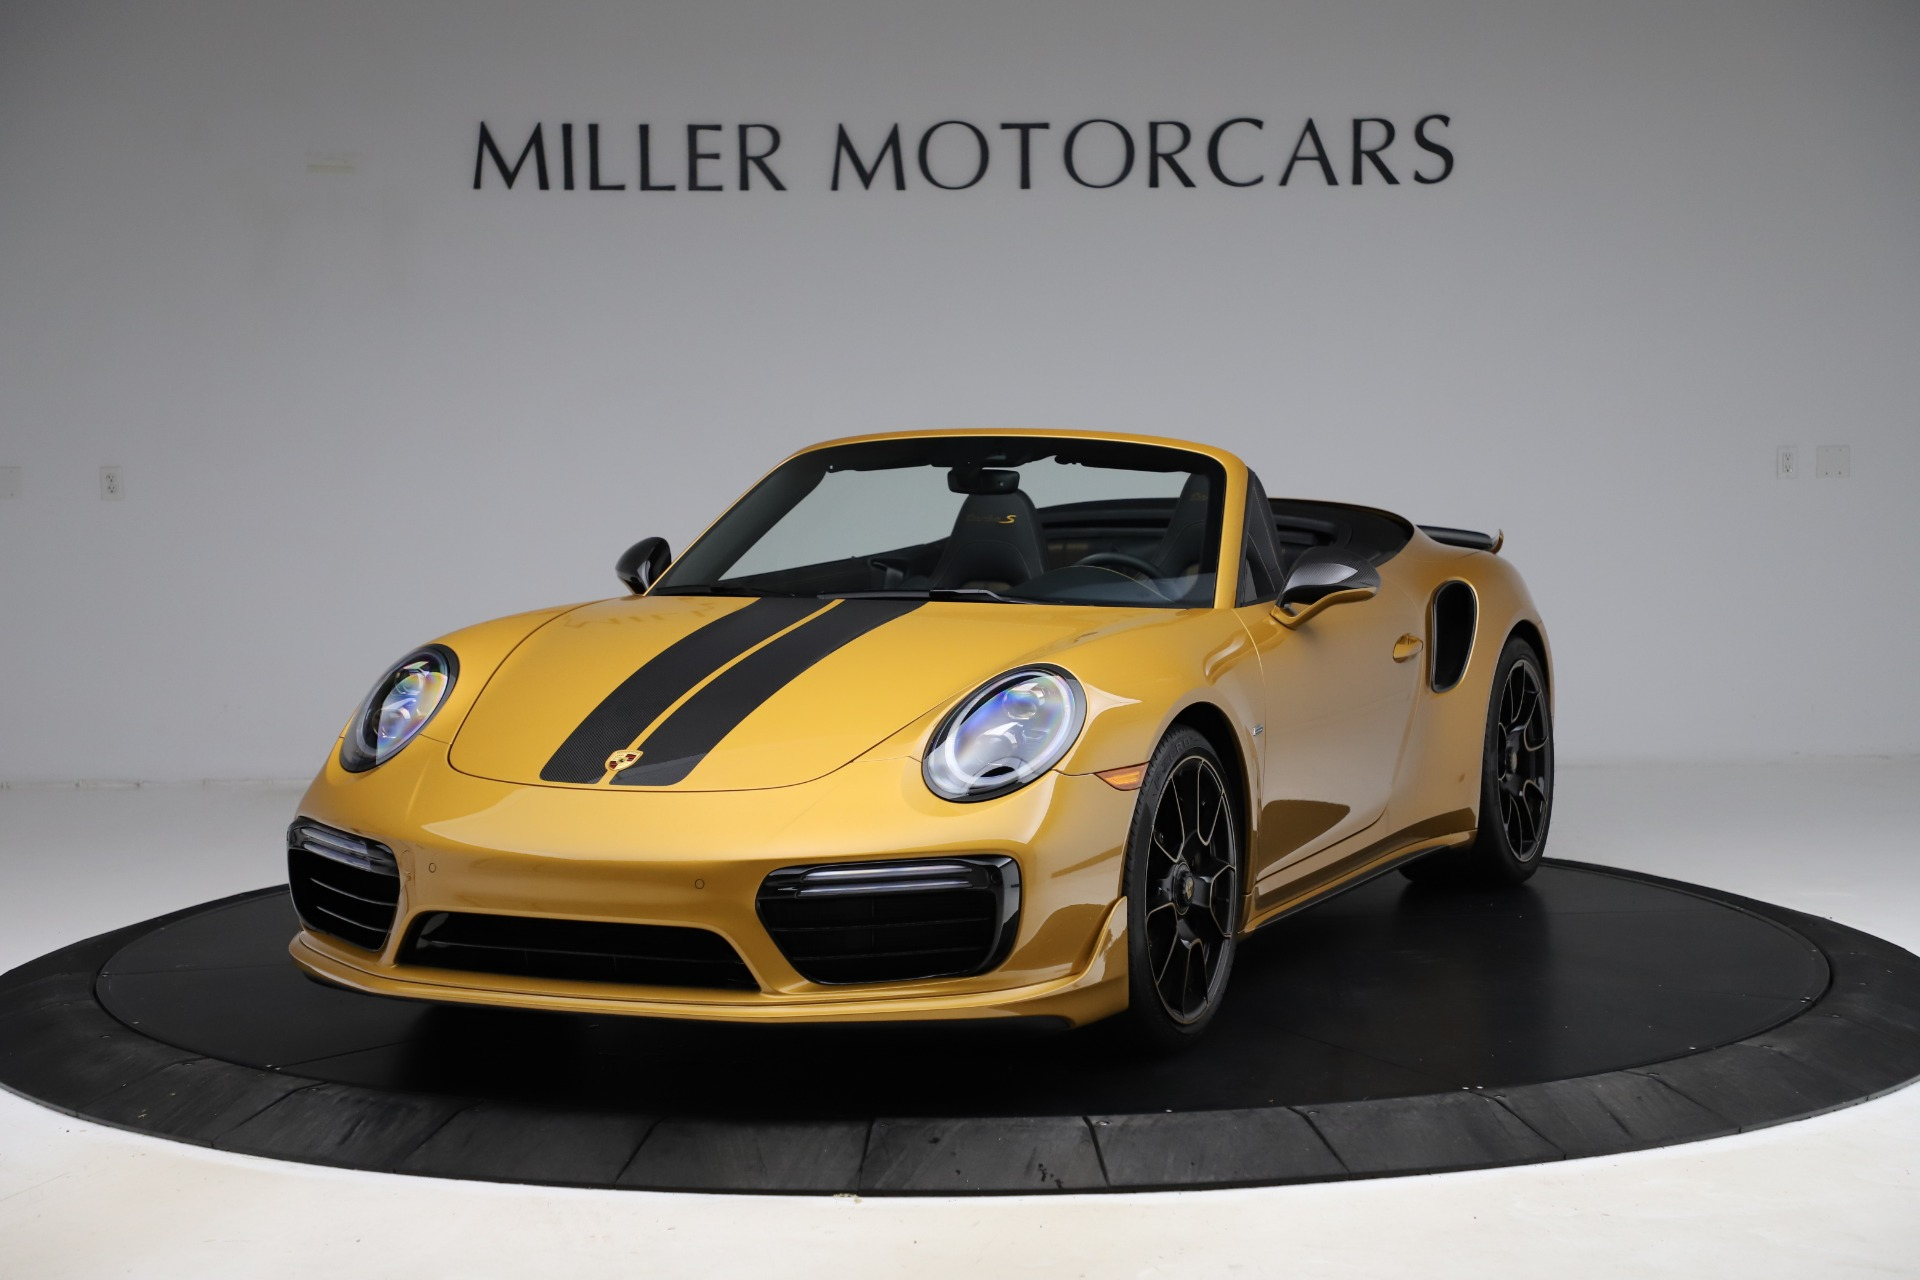 Used 2019 Porsche 911 Turbo S Exclusive for sale $249,900 at Rolls-Royce Motor Cars Greenwich in Greenwich CT 06830 1